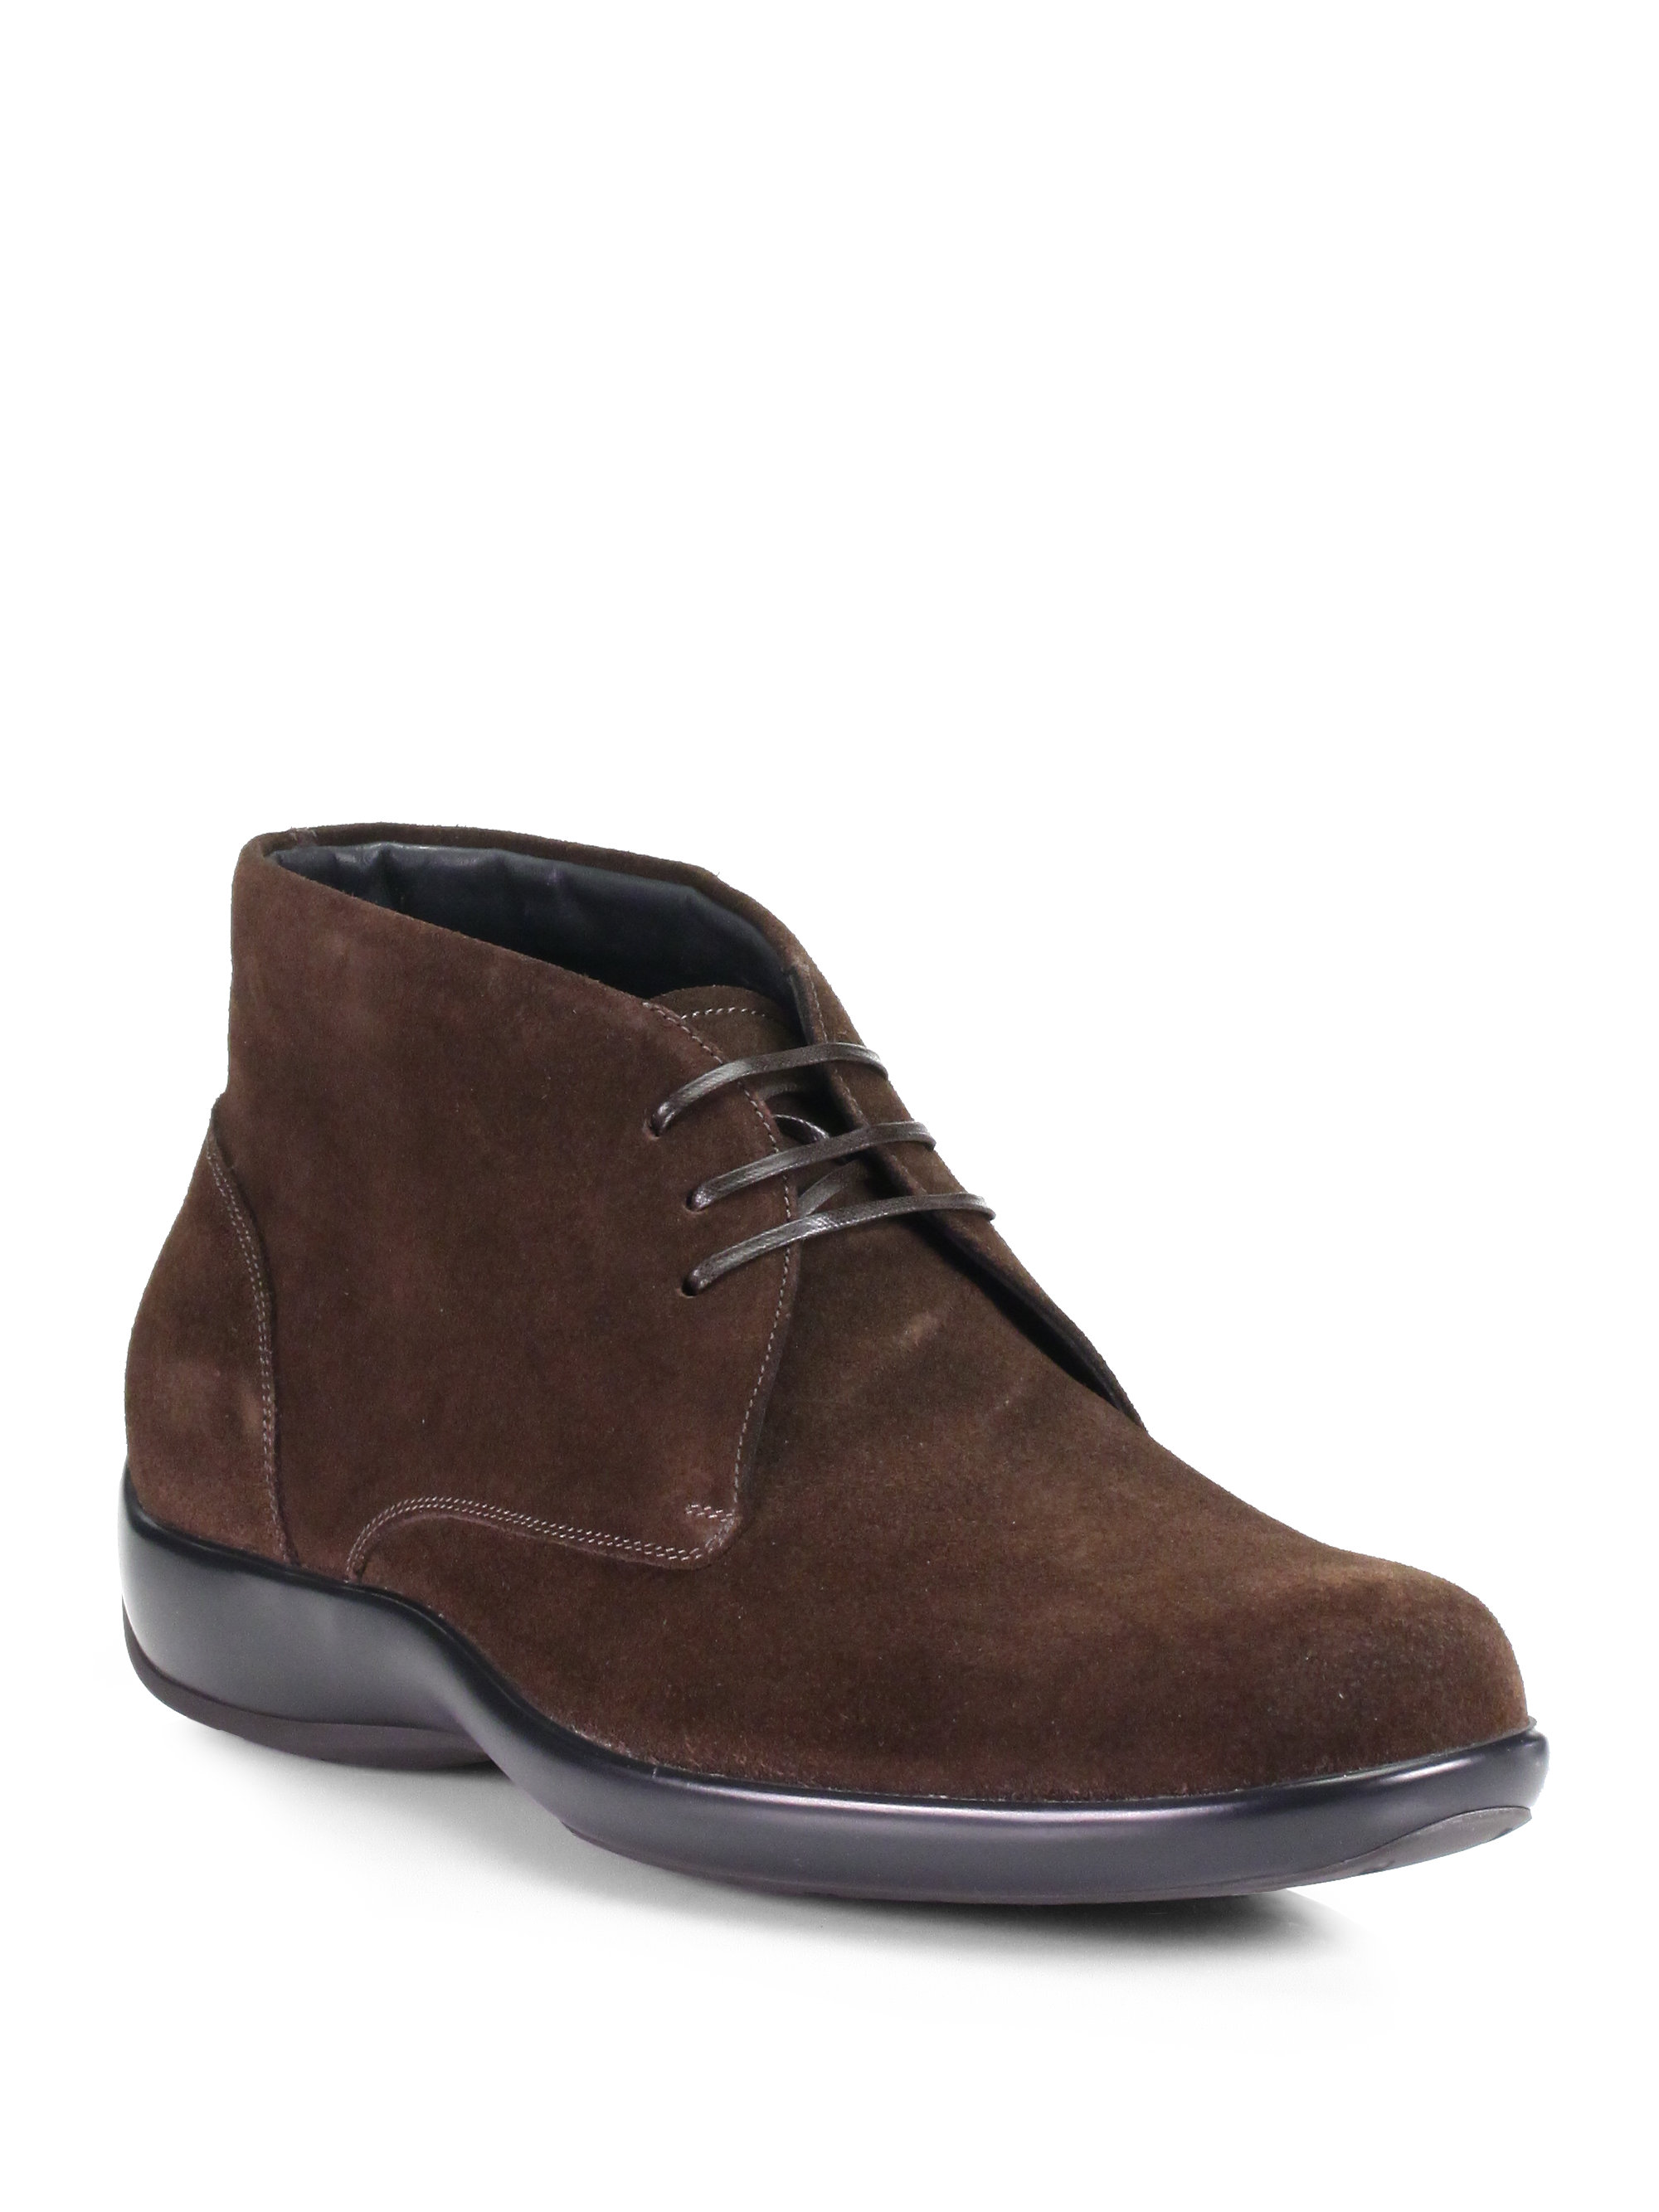 ferragamo studio suede chukka boots in brown for new